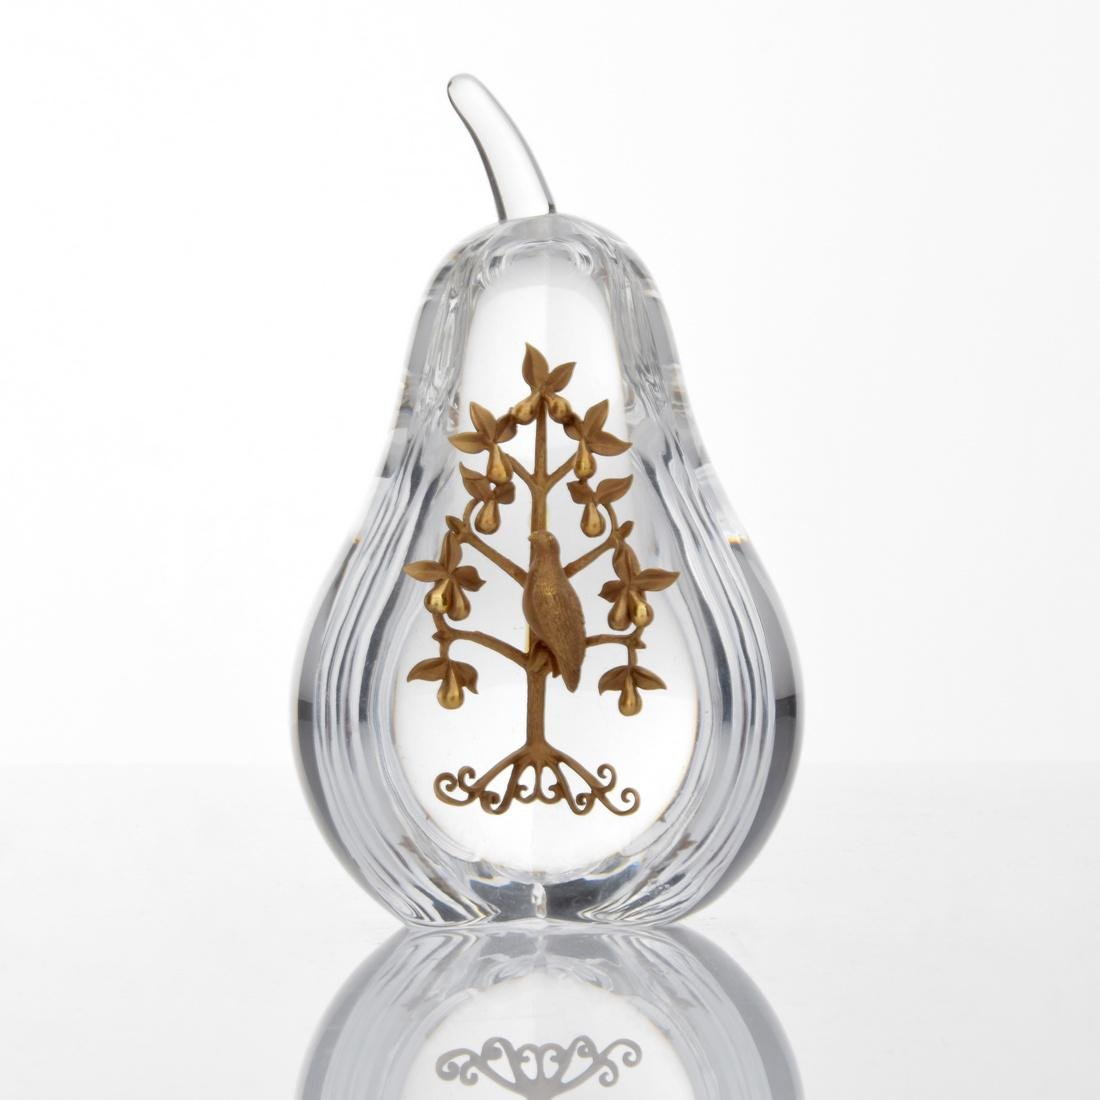 Steuben PARTRIDGE IN A PEAR TREE Paperweight